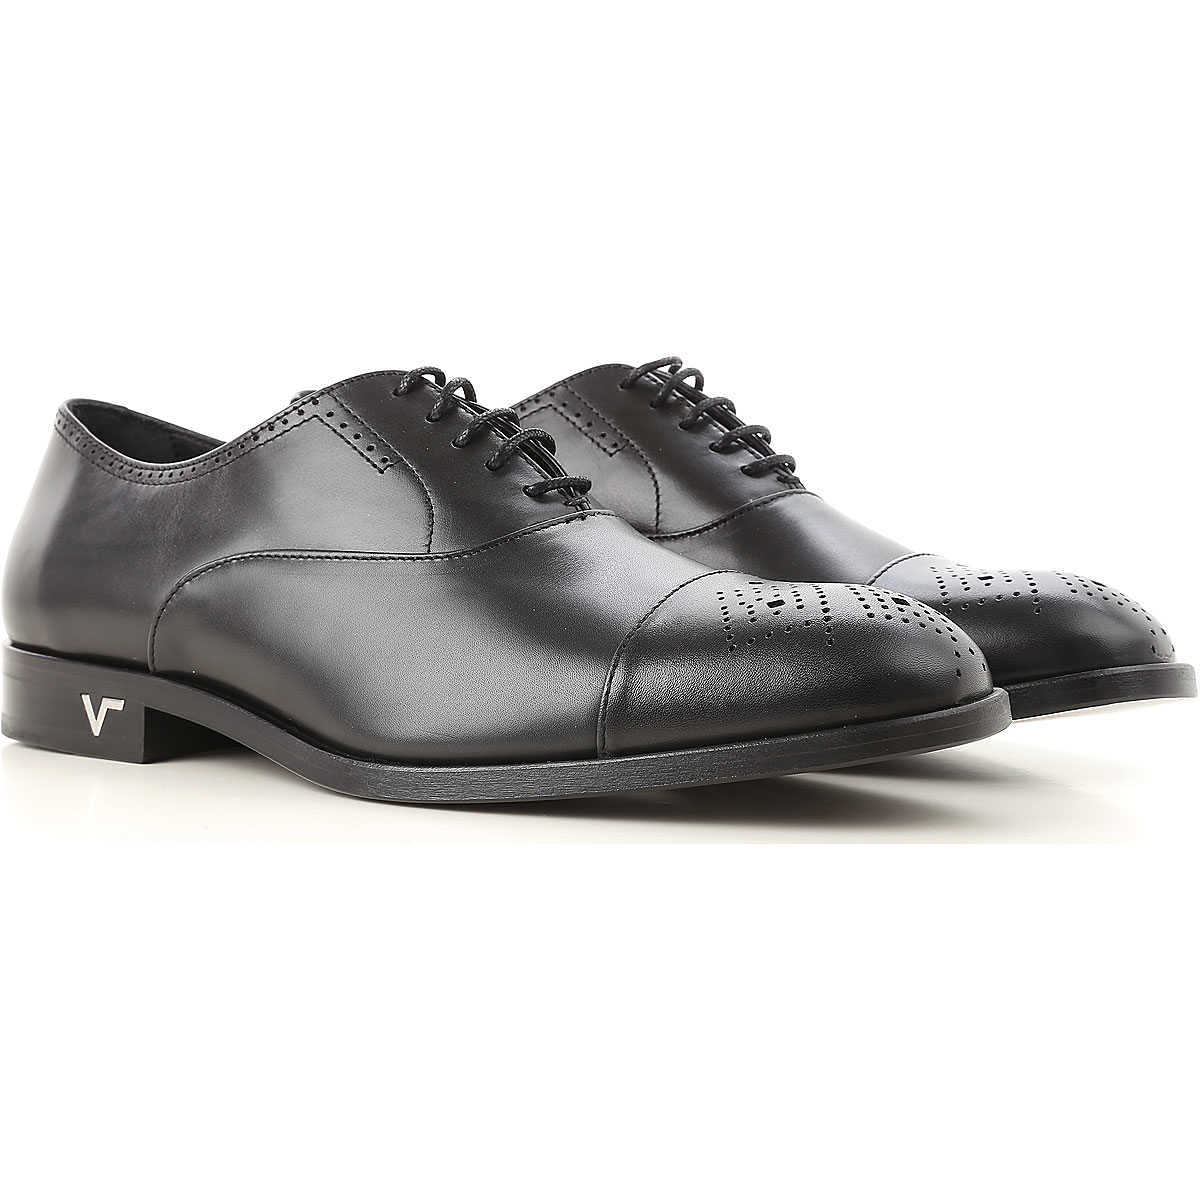 Versace Lace Up Shoes for Men Oxfords 7 8.5 9 9.25 Derbies and Brogues On Sale UK - GOOFASH